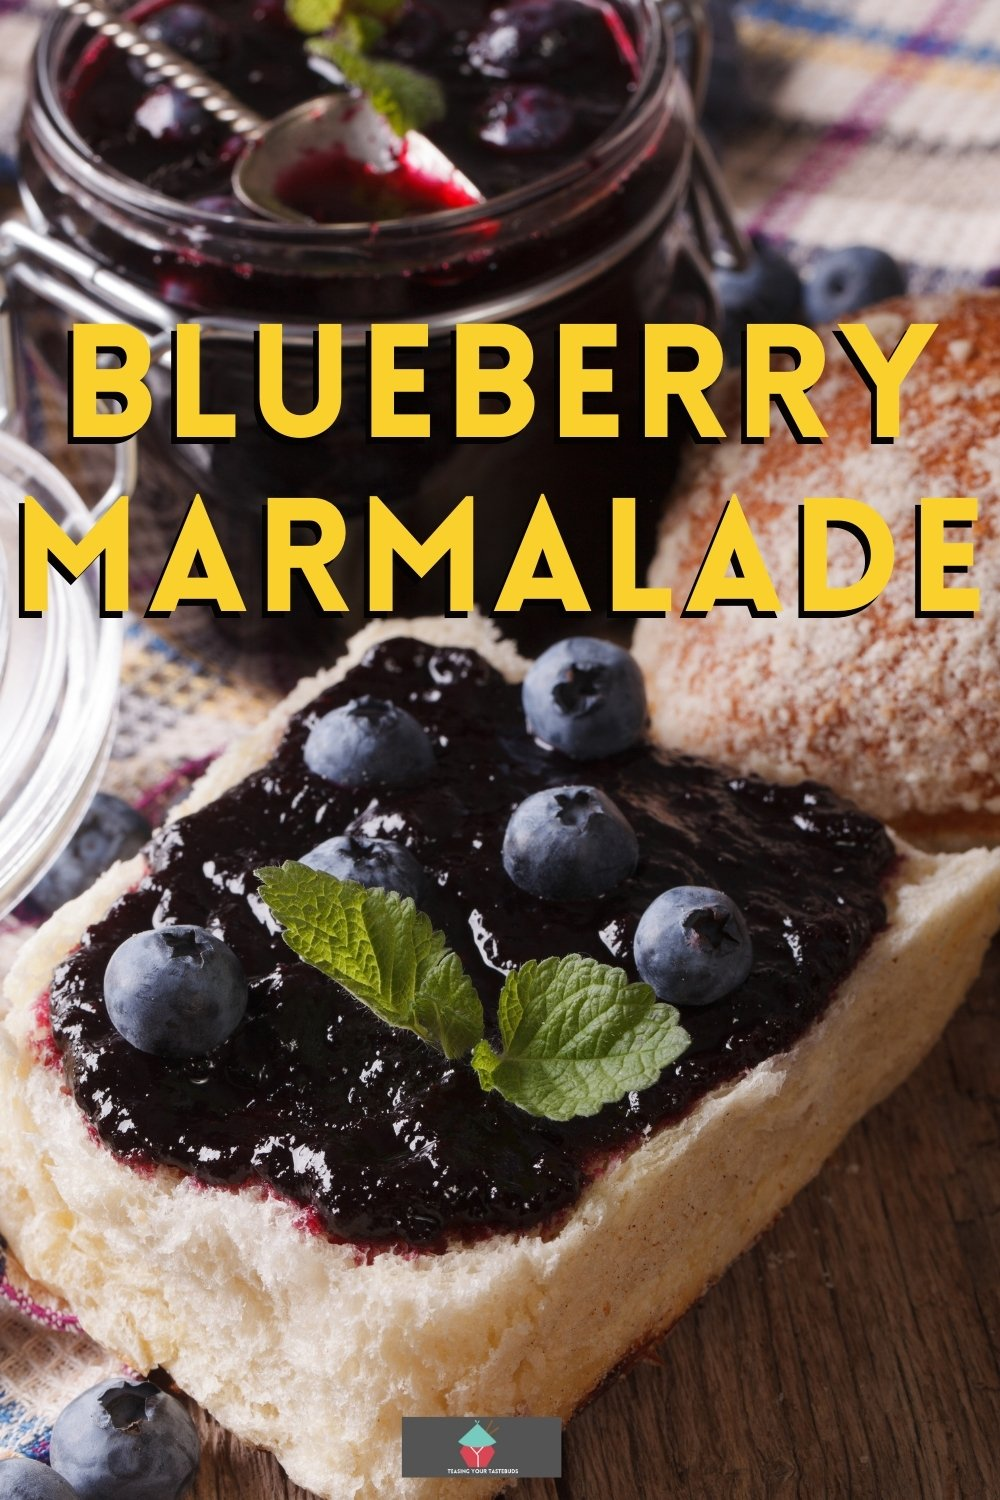 How To Make Blueberry Marmalade, homemade jam with added lemon and orange make this a delicious preserve for breakfast time.